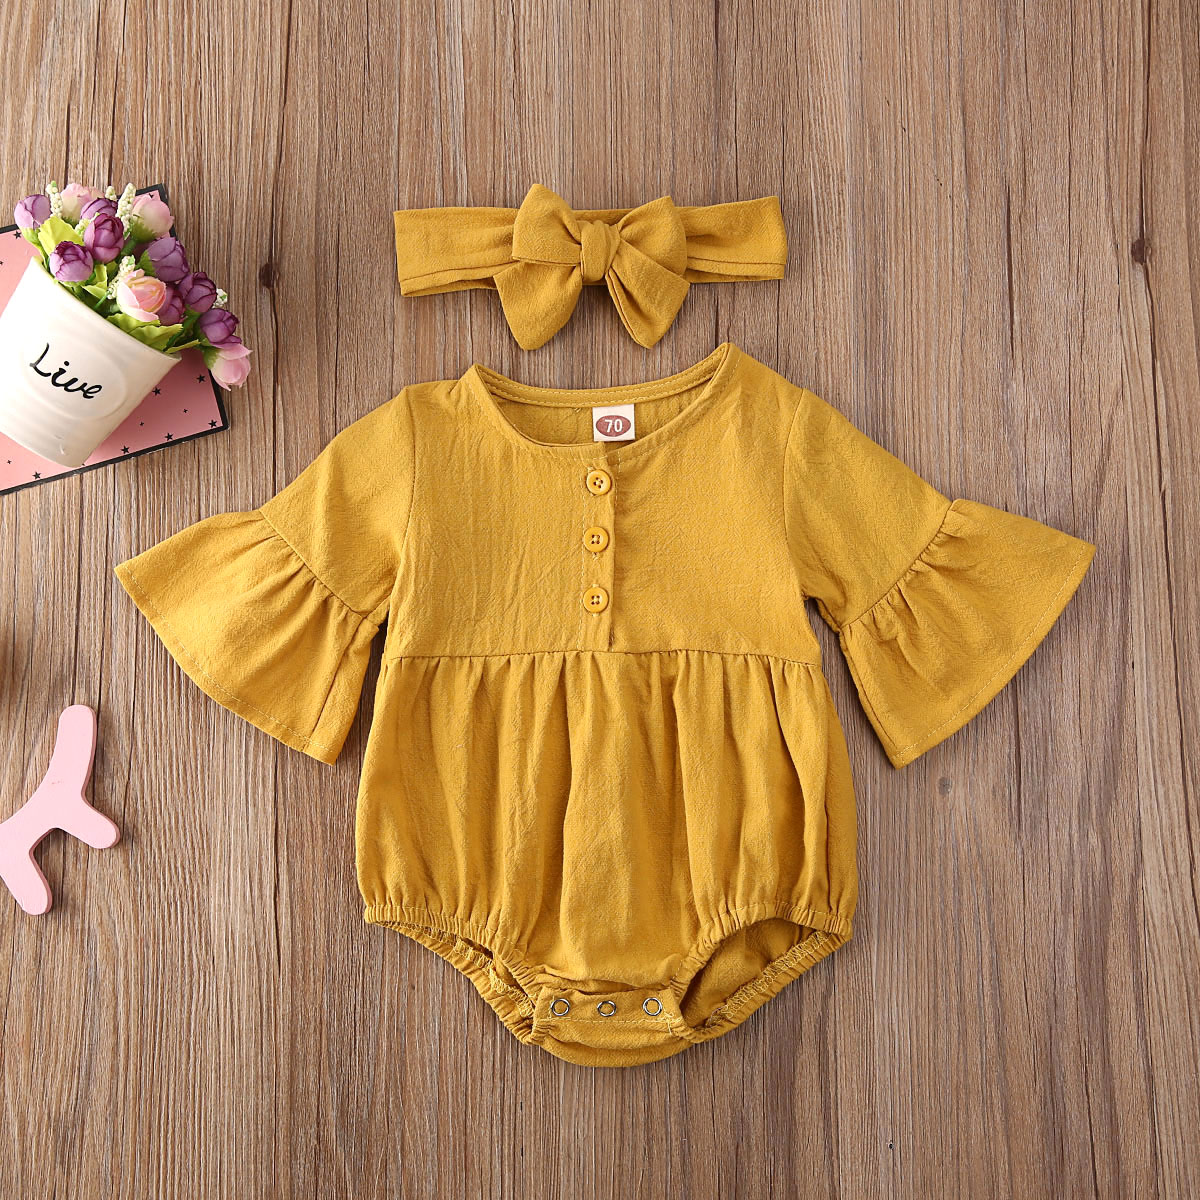 Pudcoco Newborn Baby Girl Clothes Solid Color Long Sleeve Knitted Cotton Romper Jumpsuit Headband 2Pcs Outfits Clothes